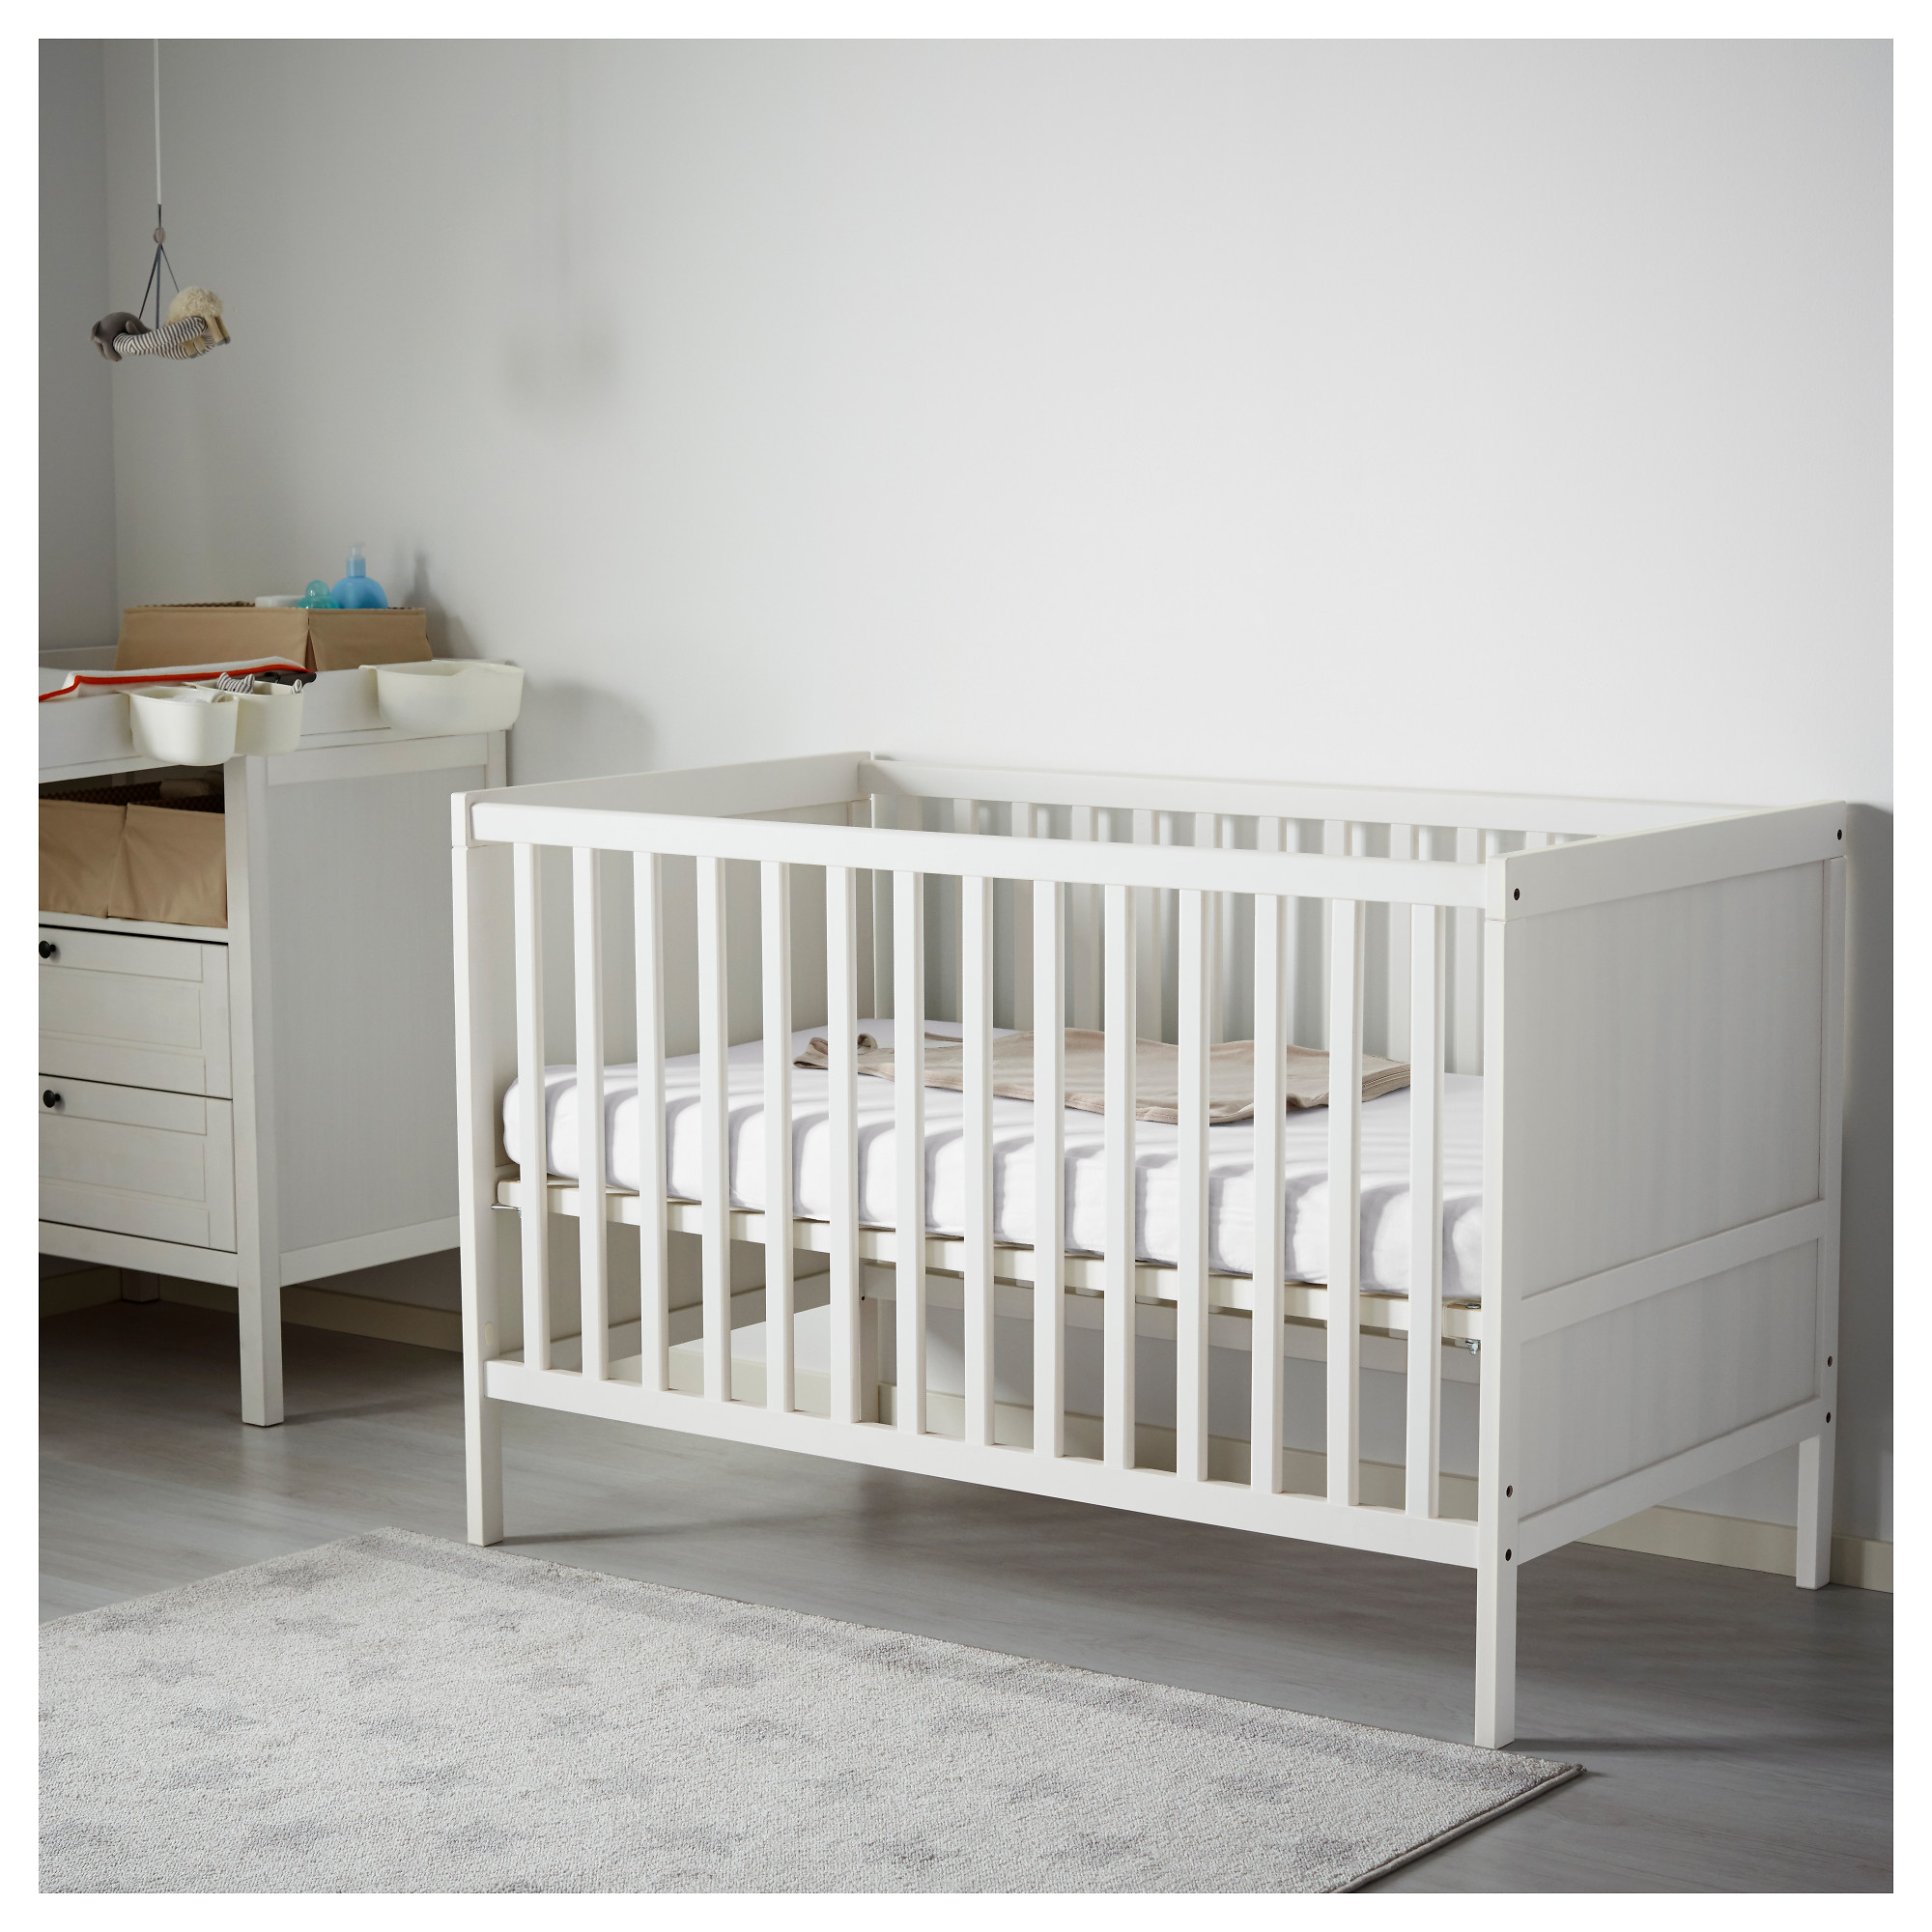 Baby bed with parents - Ikea Cribs